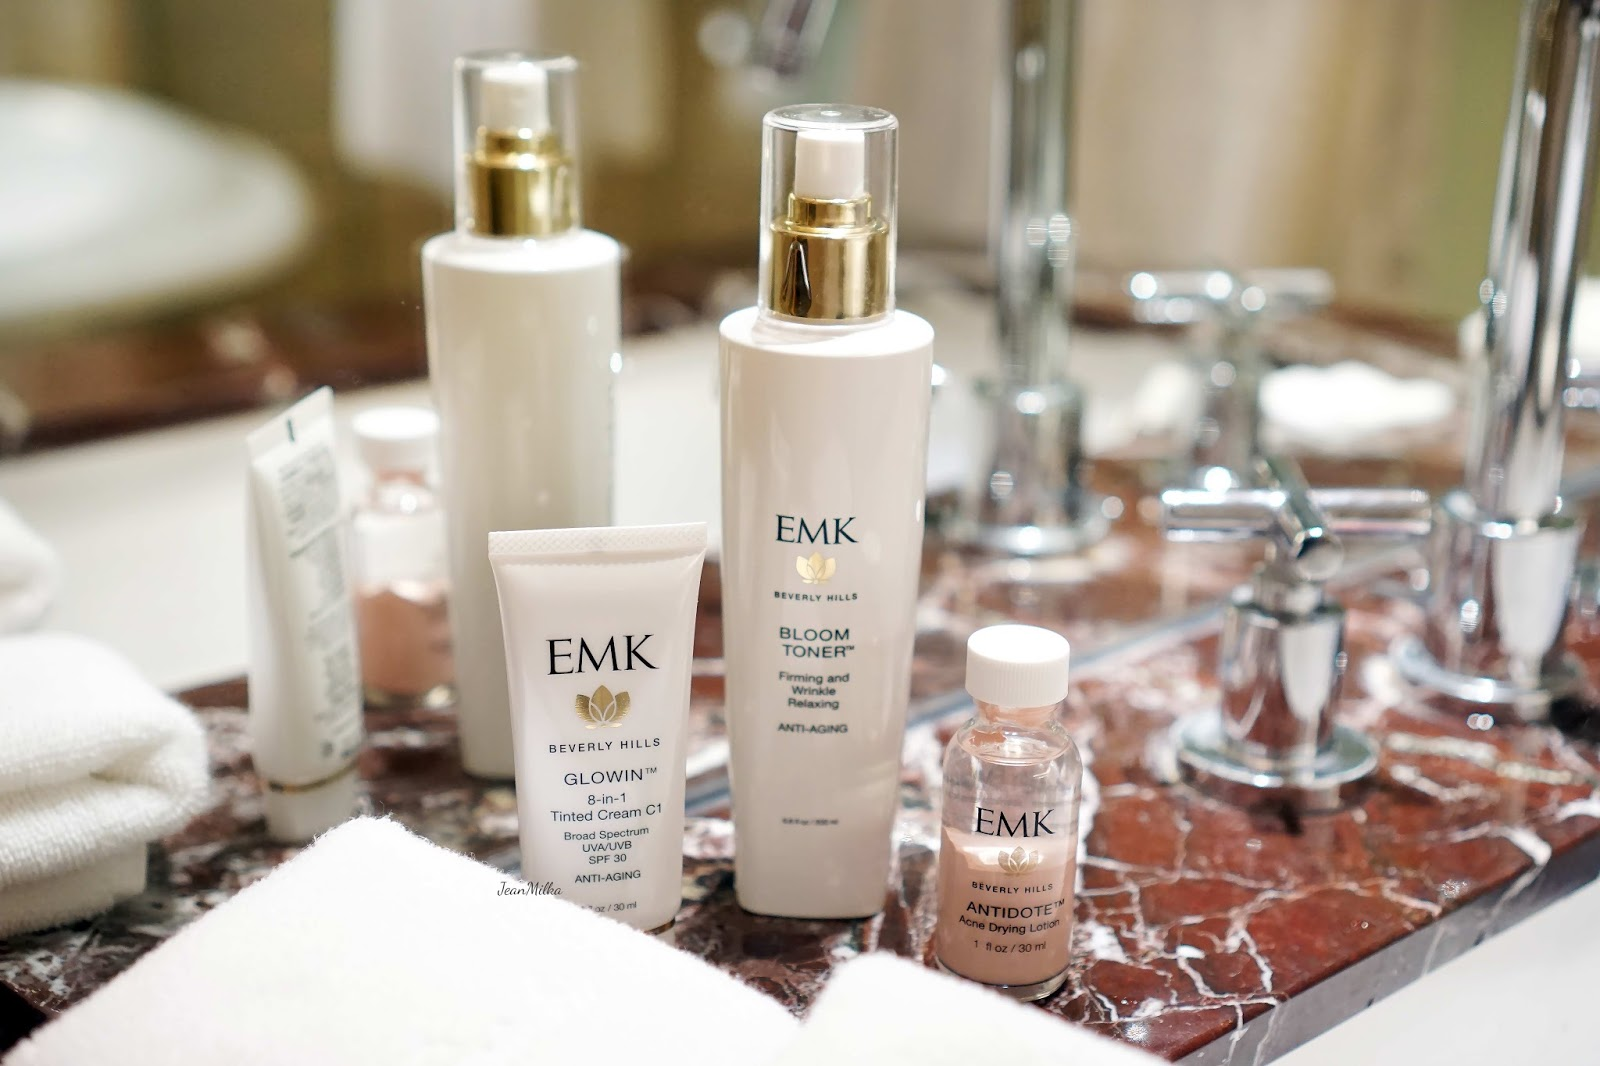 emk, emk beverly hills, review emk beverly hills, emk beverly hills skincare, skicare, review, product review, acne skincare, kulit berjerawat